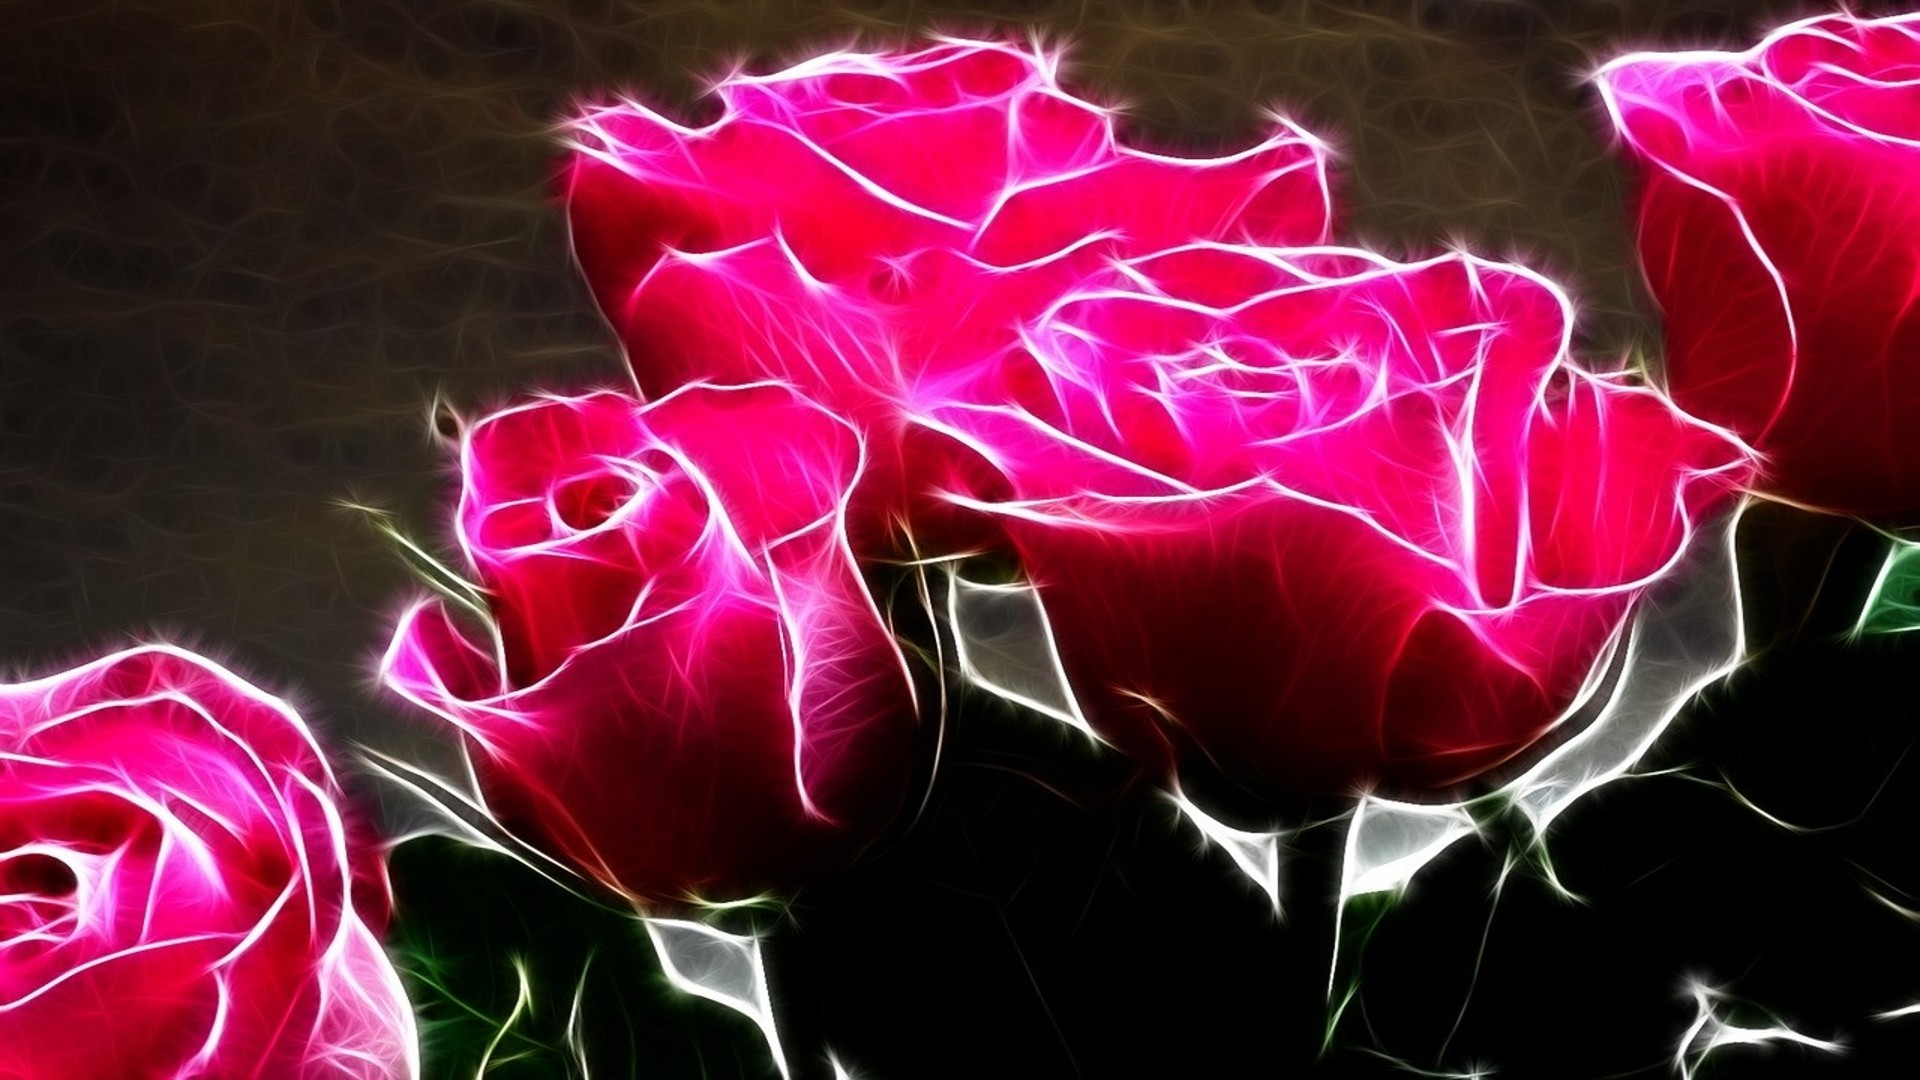 5 59095 rose live wallpaper hd animated wallpapers of roses